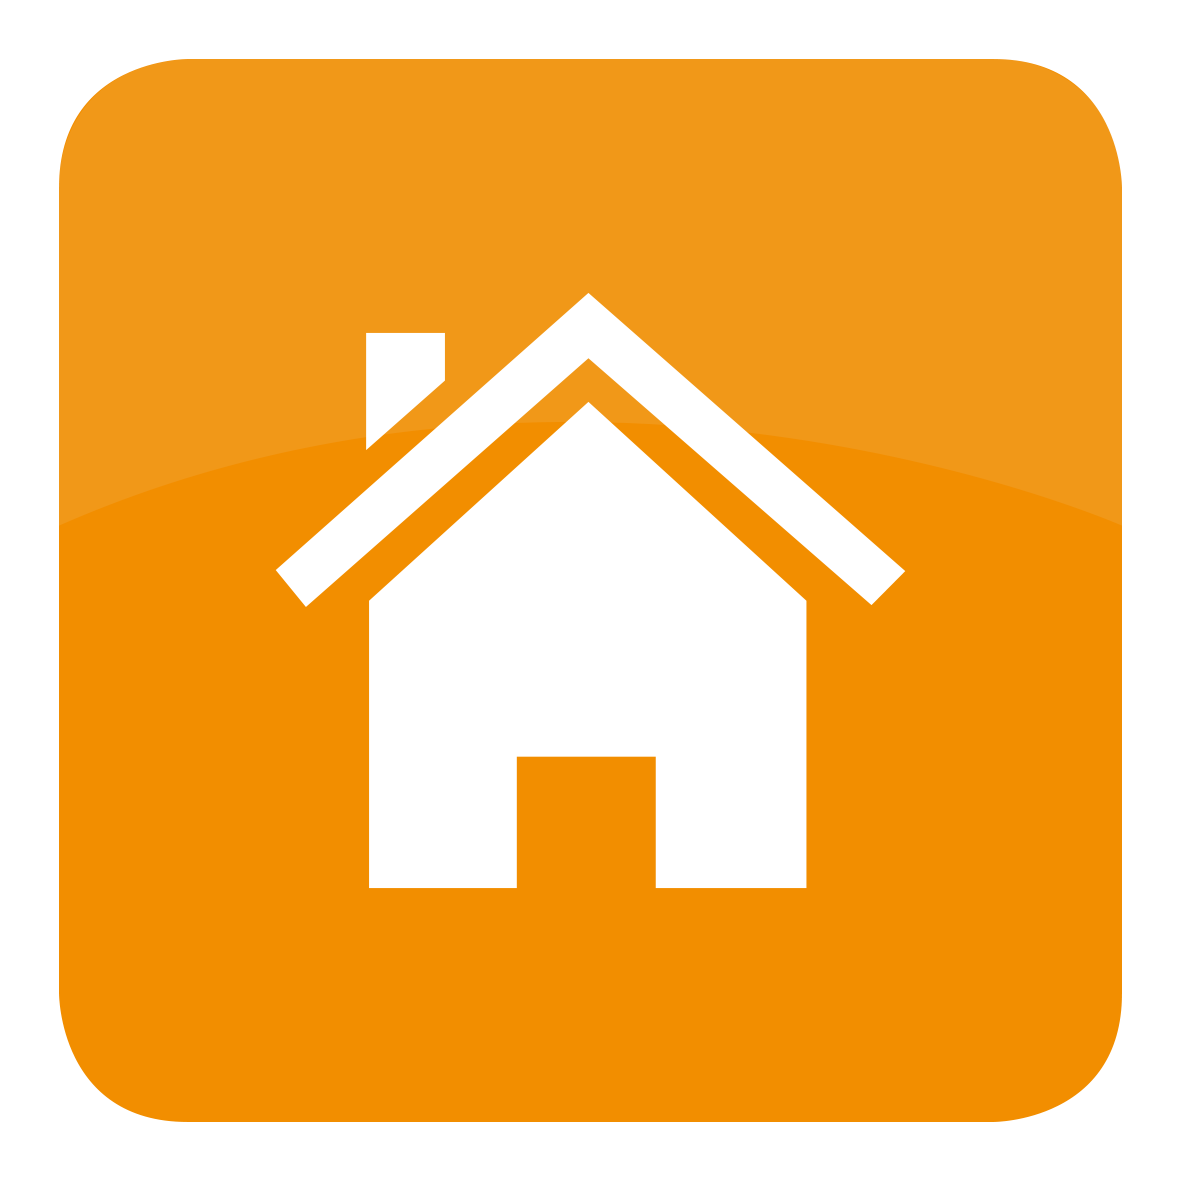 Residential - Sector Image